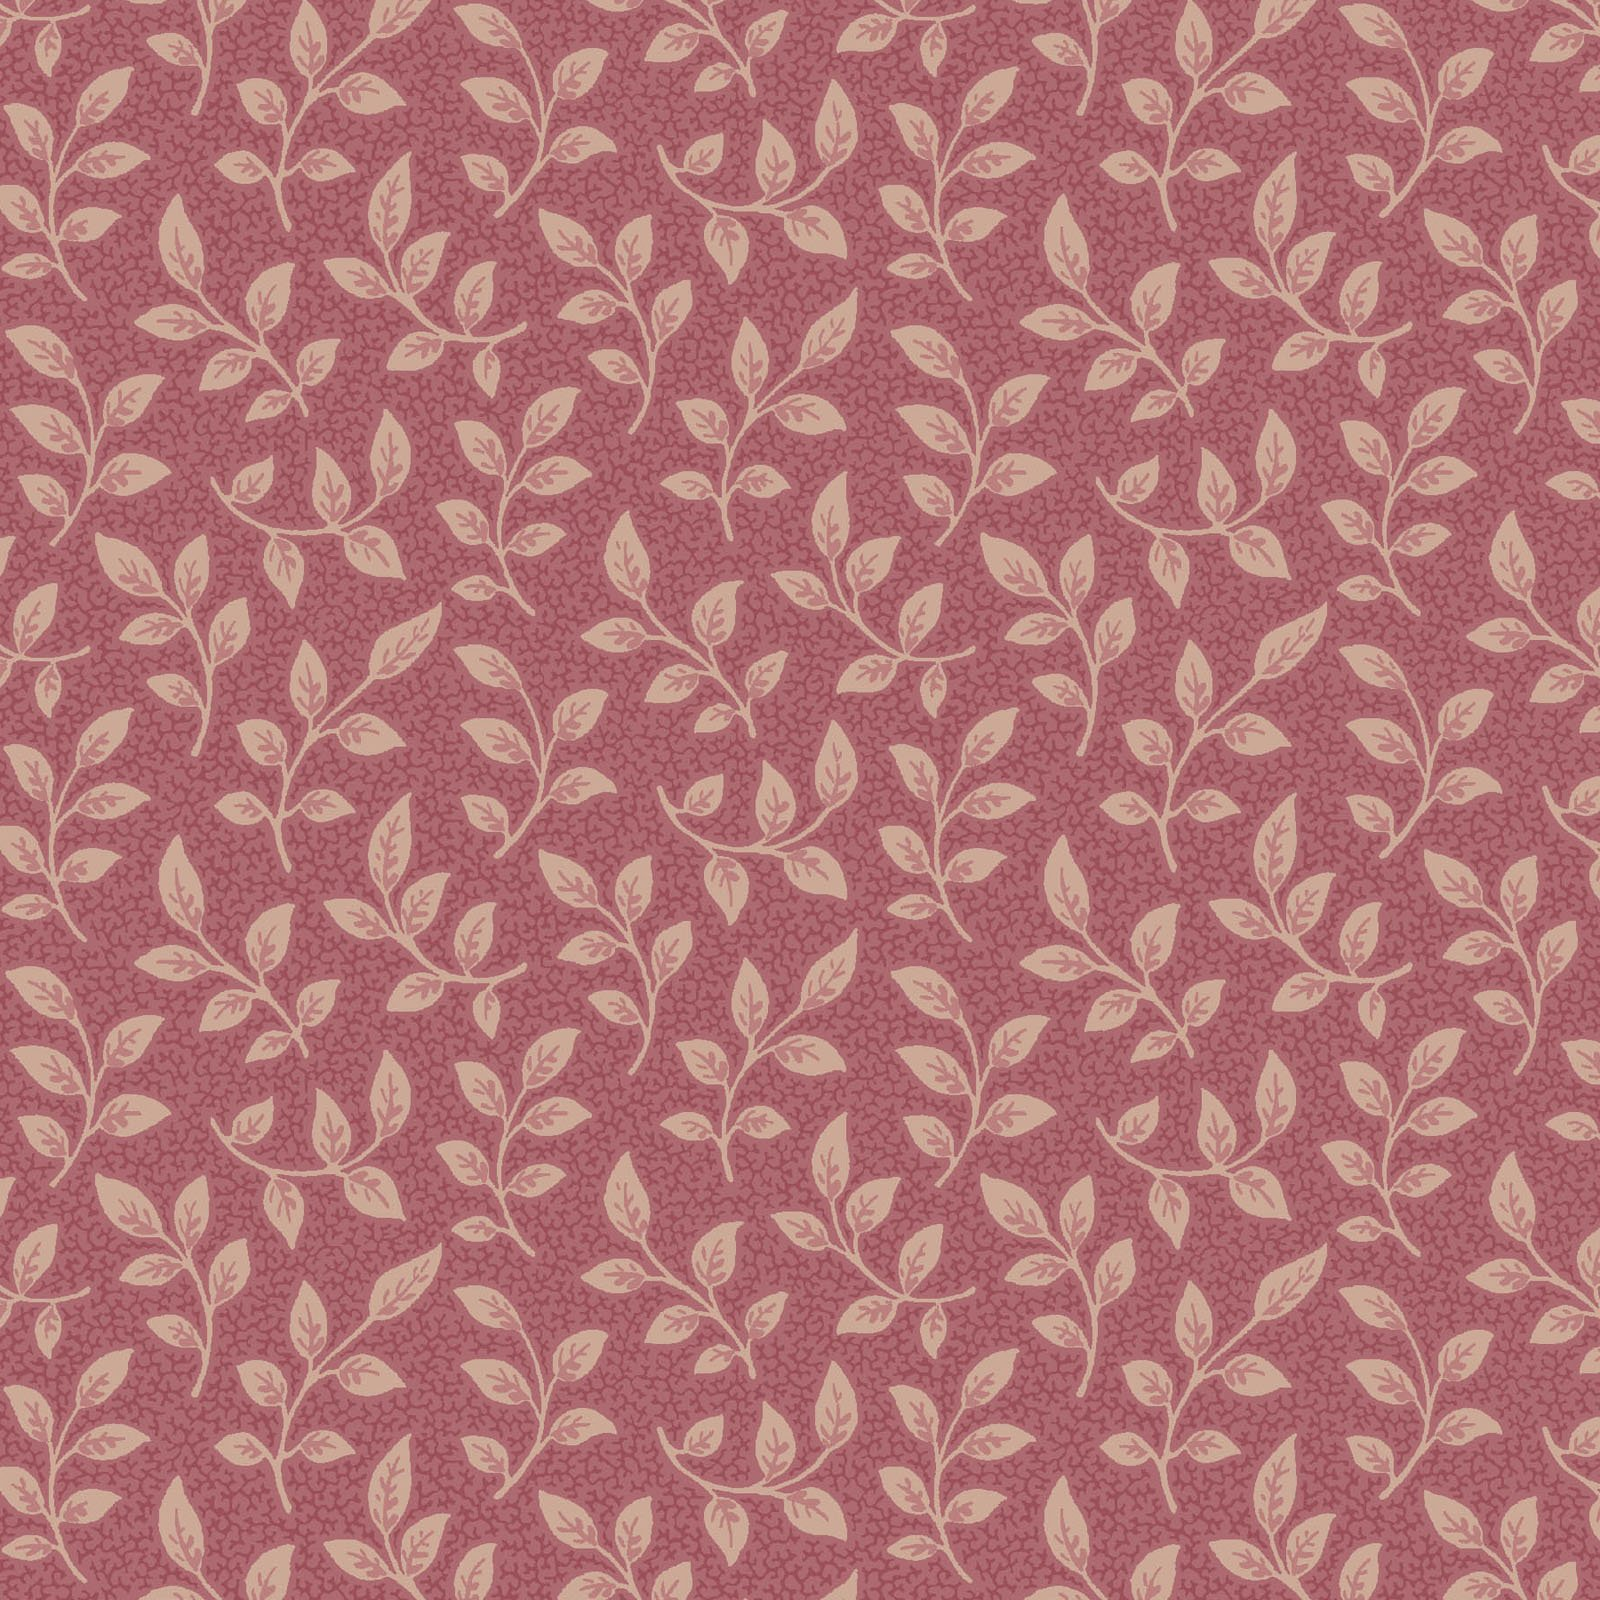 ANAS-4246 P - ANASTASIA - RED BY P&B BOUTIQUE LEAVES PINK